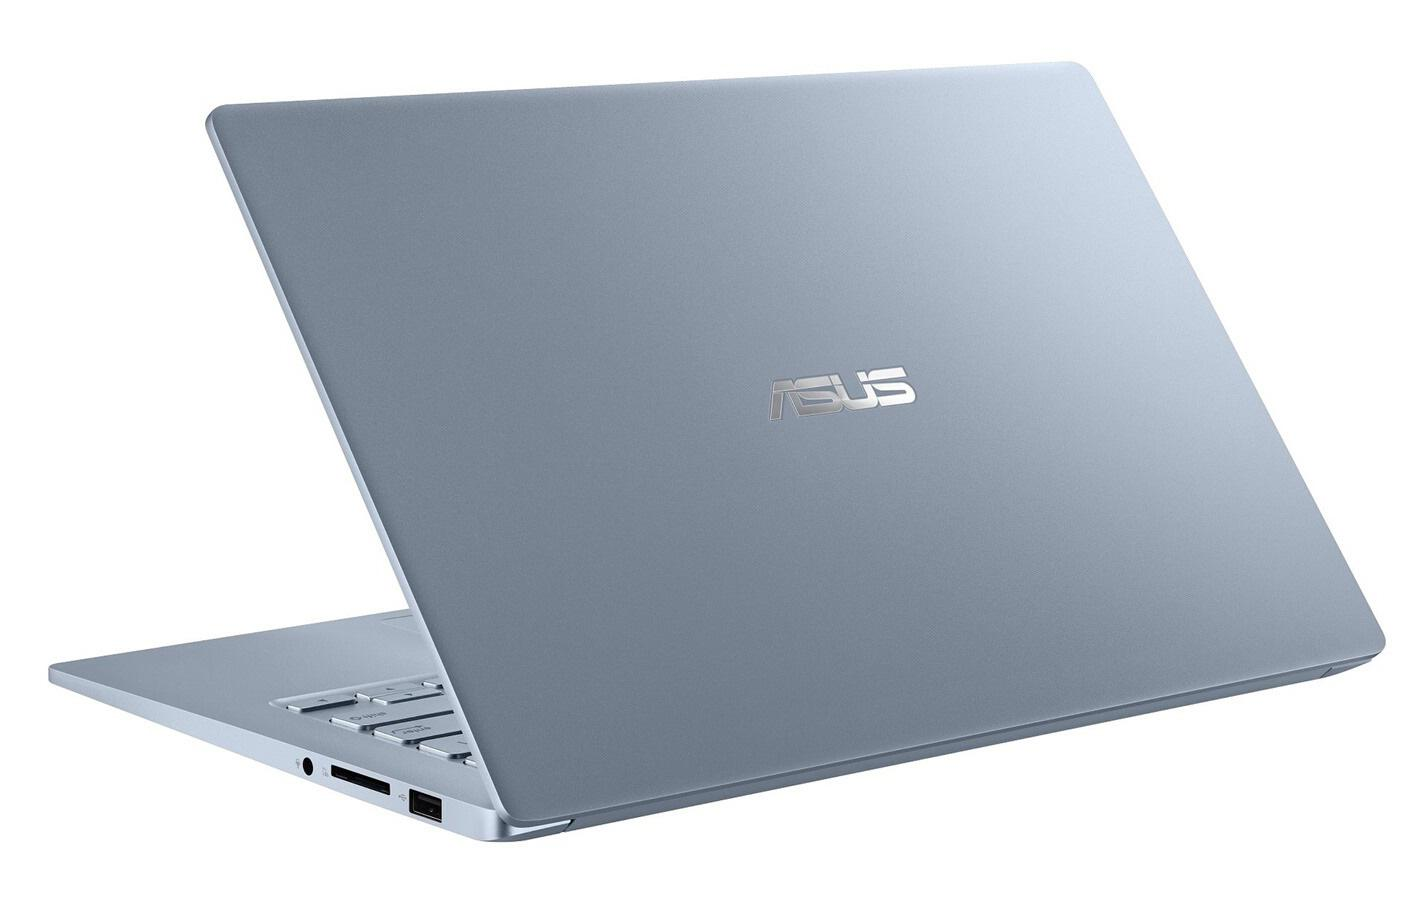 Ordinateur portable Asus VivoBook S403FA-EB116T Bleu Gris - photo 8